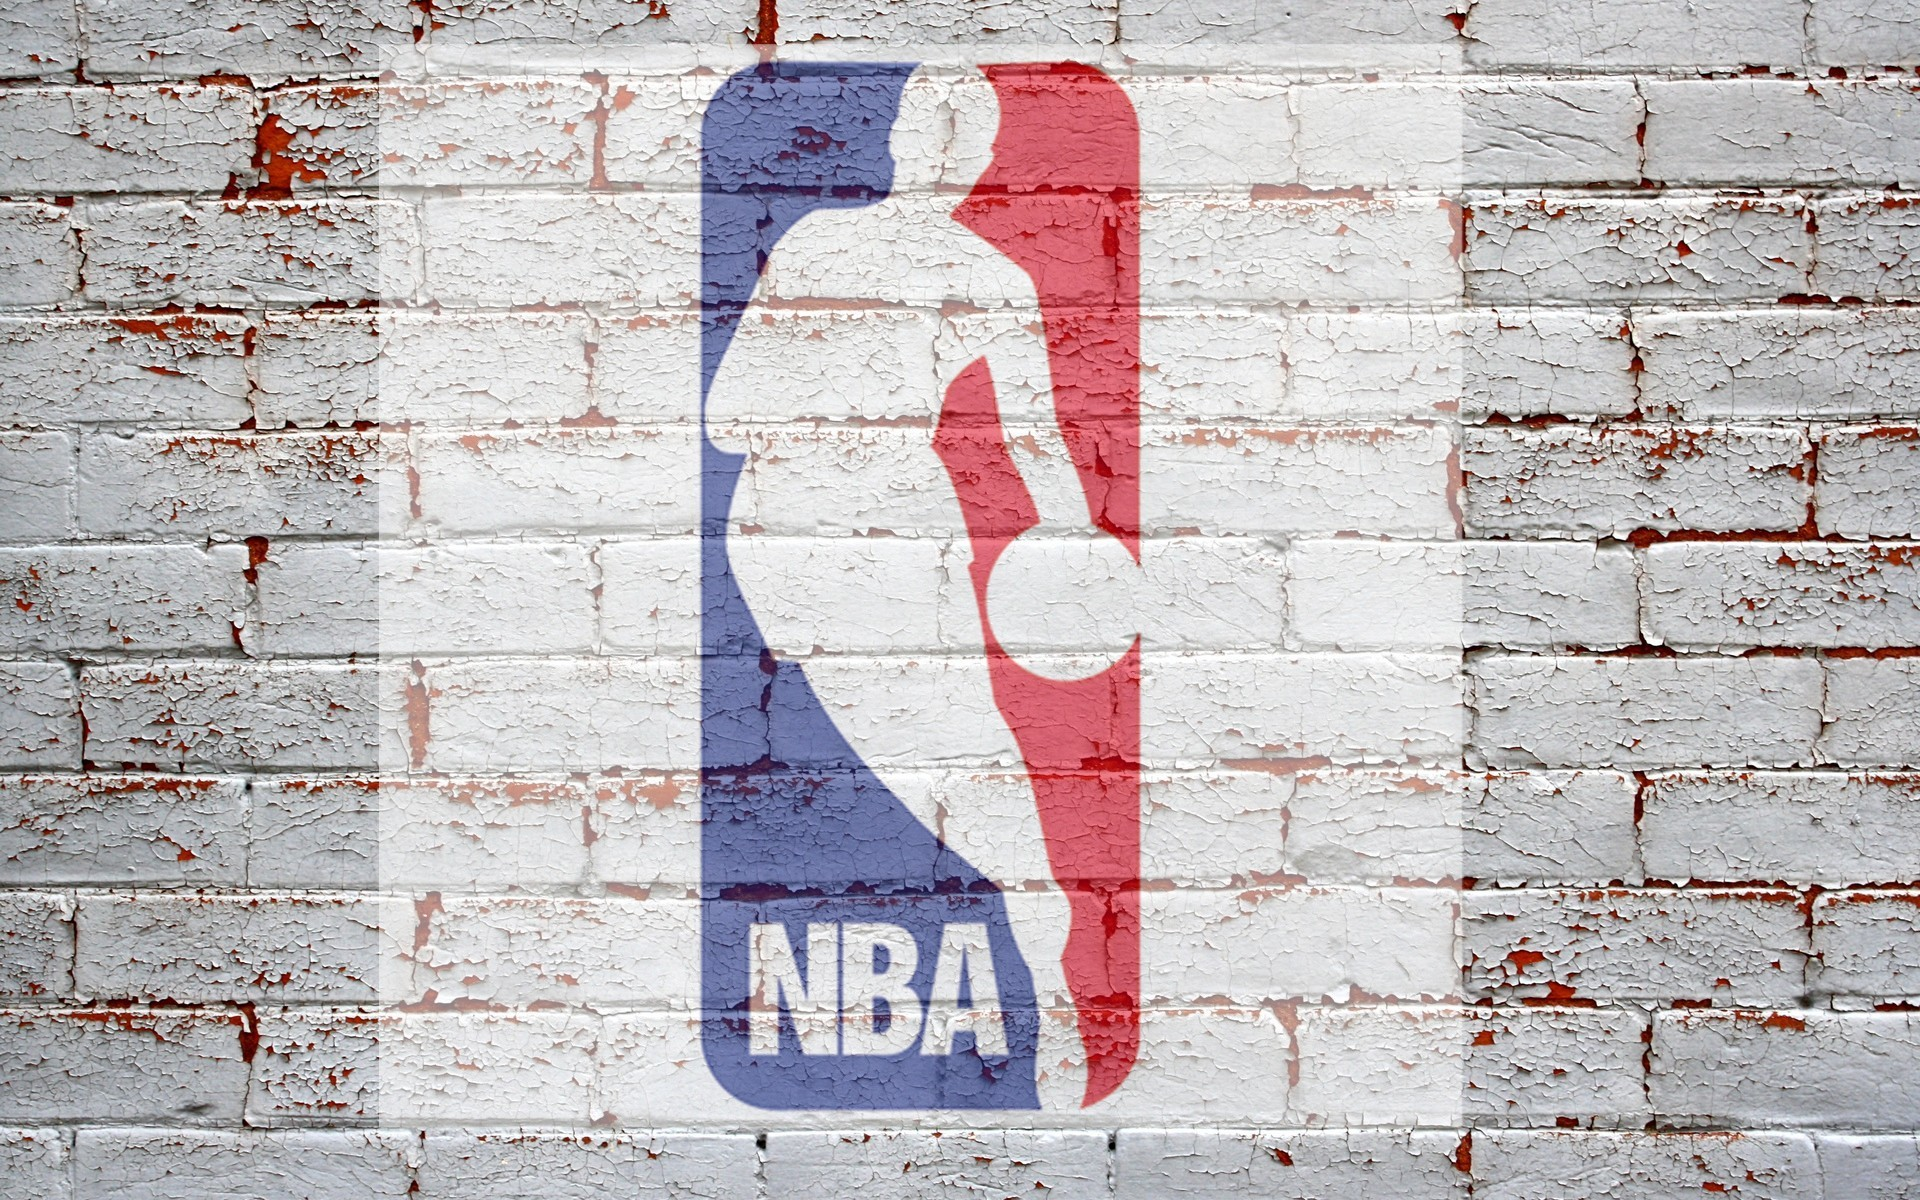 Vertical Full Hd Wallpapers 50 Nba Wallpapers 183 ① Download Free Hd Backgrounds For